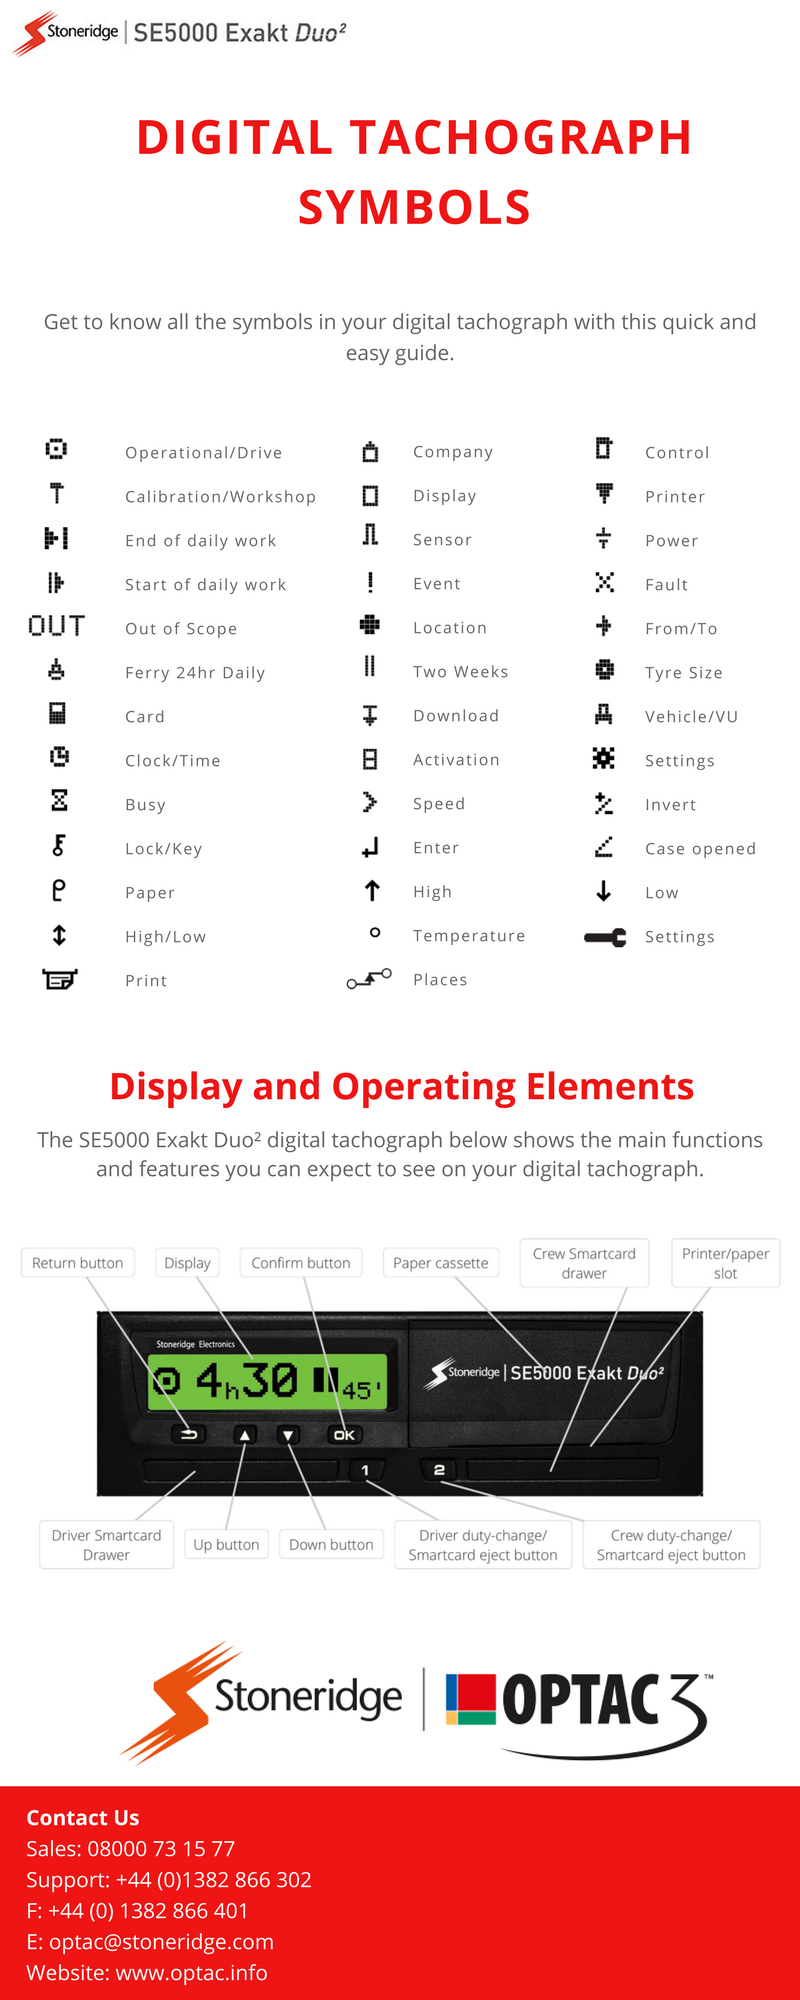 Digital tachograph symbols explained infographic optac uk share this image on your site ccuart Choice Image